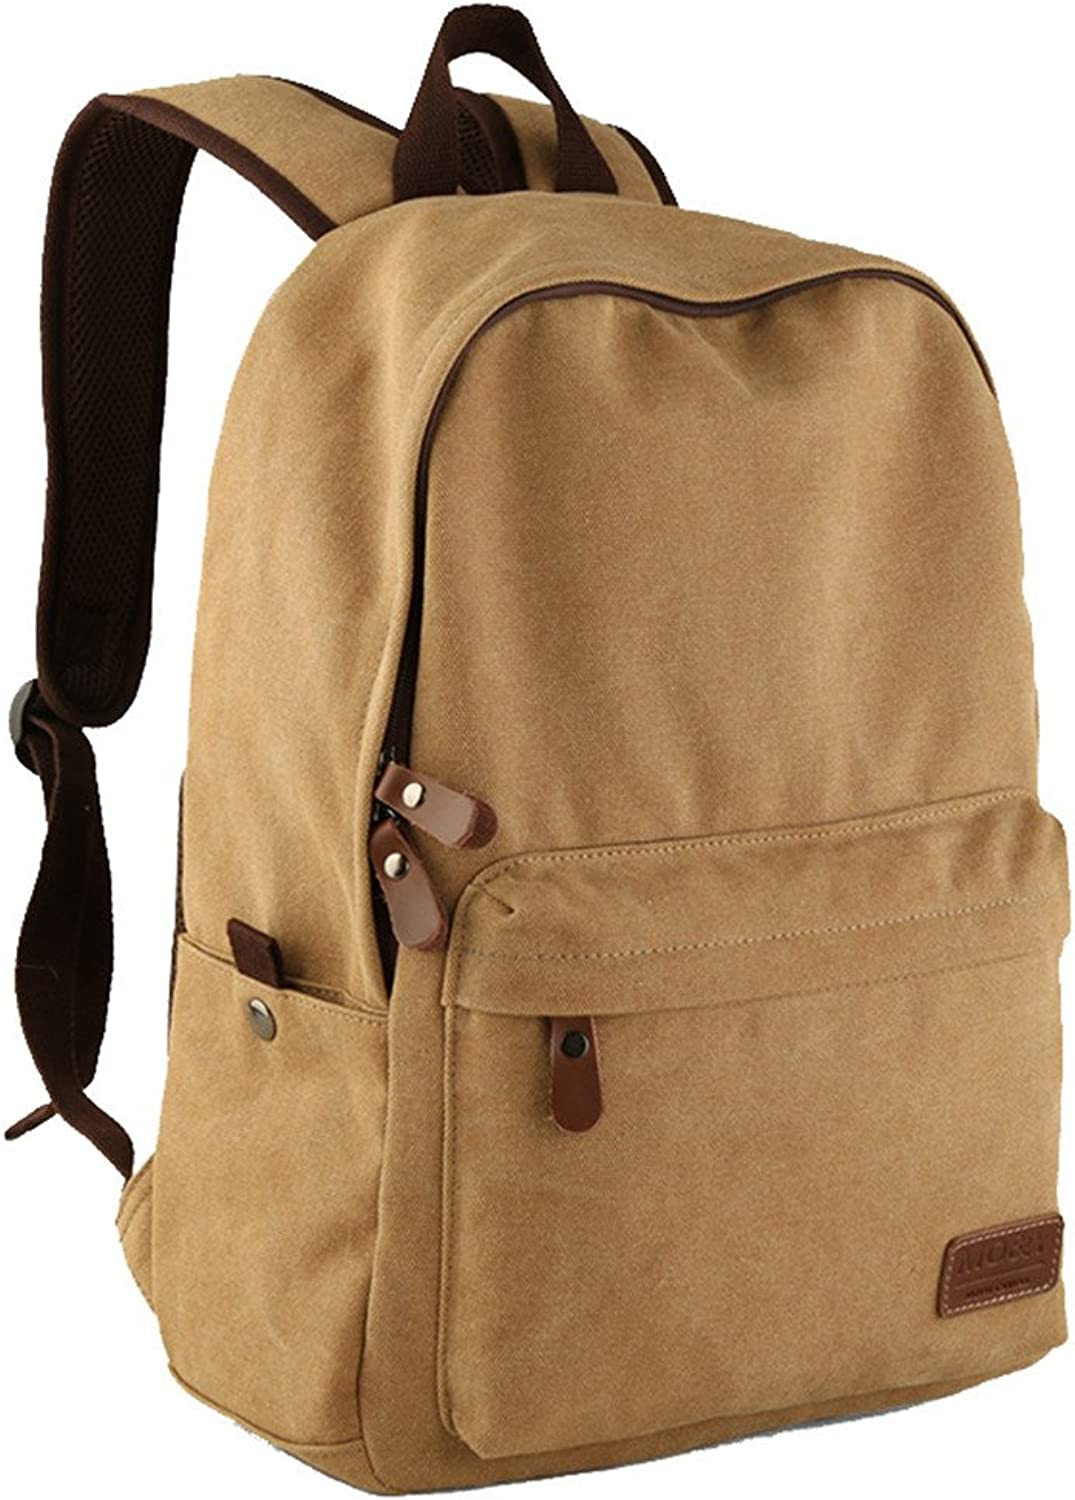 Gumstyle Men Women Vintage Canvas Backpack Rucksack School Satchel Travel Hiking Bag Khaki